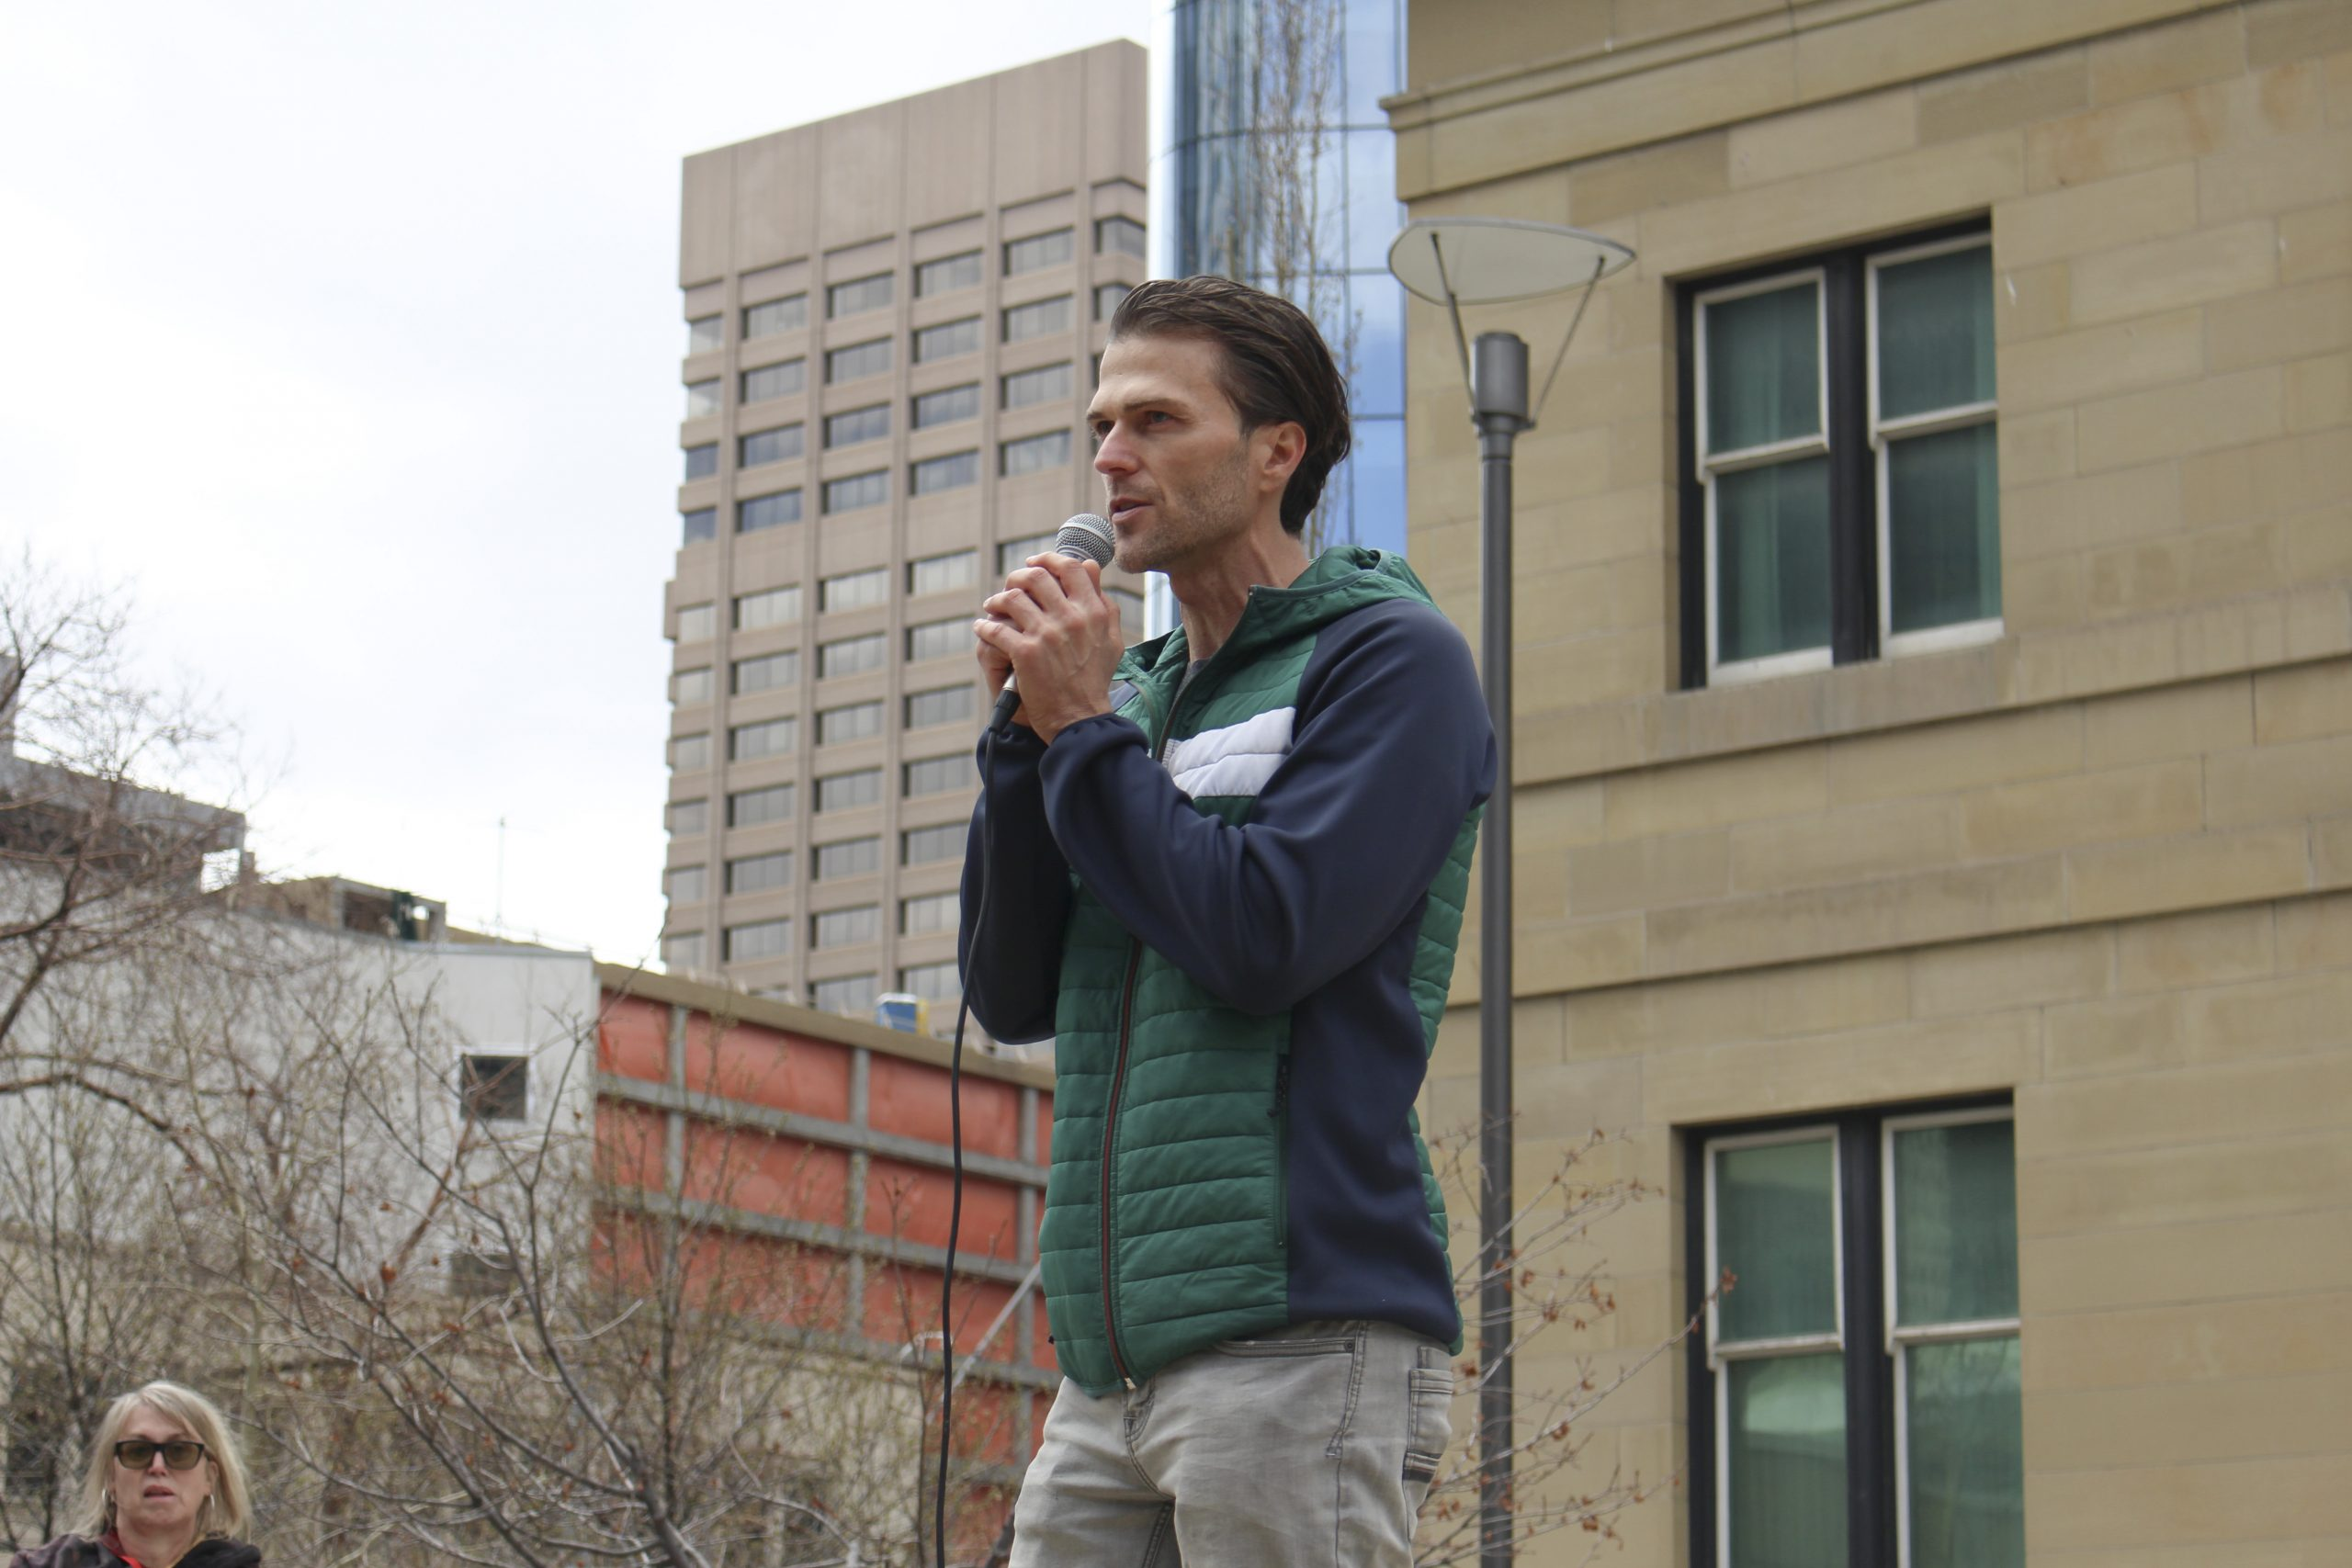 """Ryan Audette, the organizer for Calgary Freedom Central, spoke at the """"Save Small Business"""" rally taking place at Courthouse Park in downtown Calgary on April 11, 2021. Audette says that Calgary Freedom Central is different from the Walk for Freedom group in Calgary, and wants to inform people on the affect COVID-19 has had on businesses and people alike. In a Facebook post prior to the event, Audette says that people are to be kind and courteous to the media and anyone that is shooting photos, along with not bringing tiki torches or expressing any form of hatred. (Photo by Alejandro Melgar/SAIT)"""